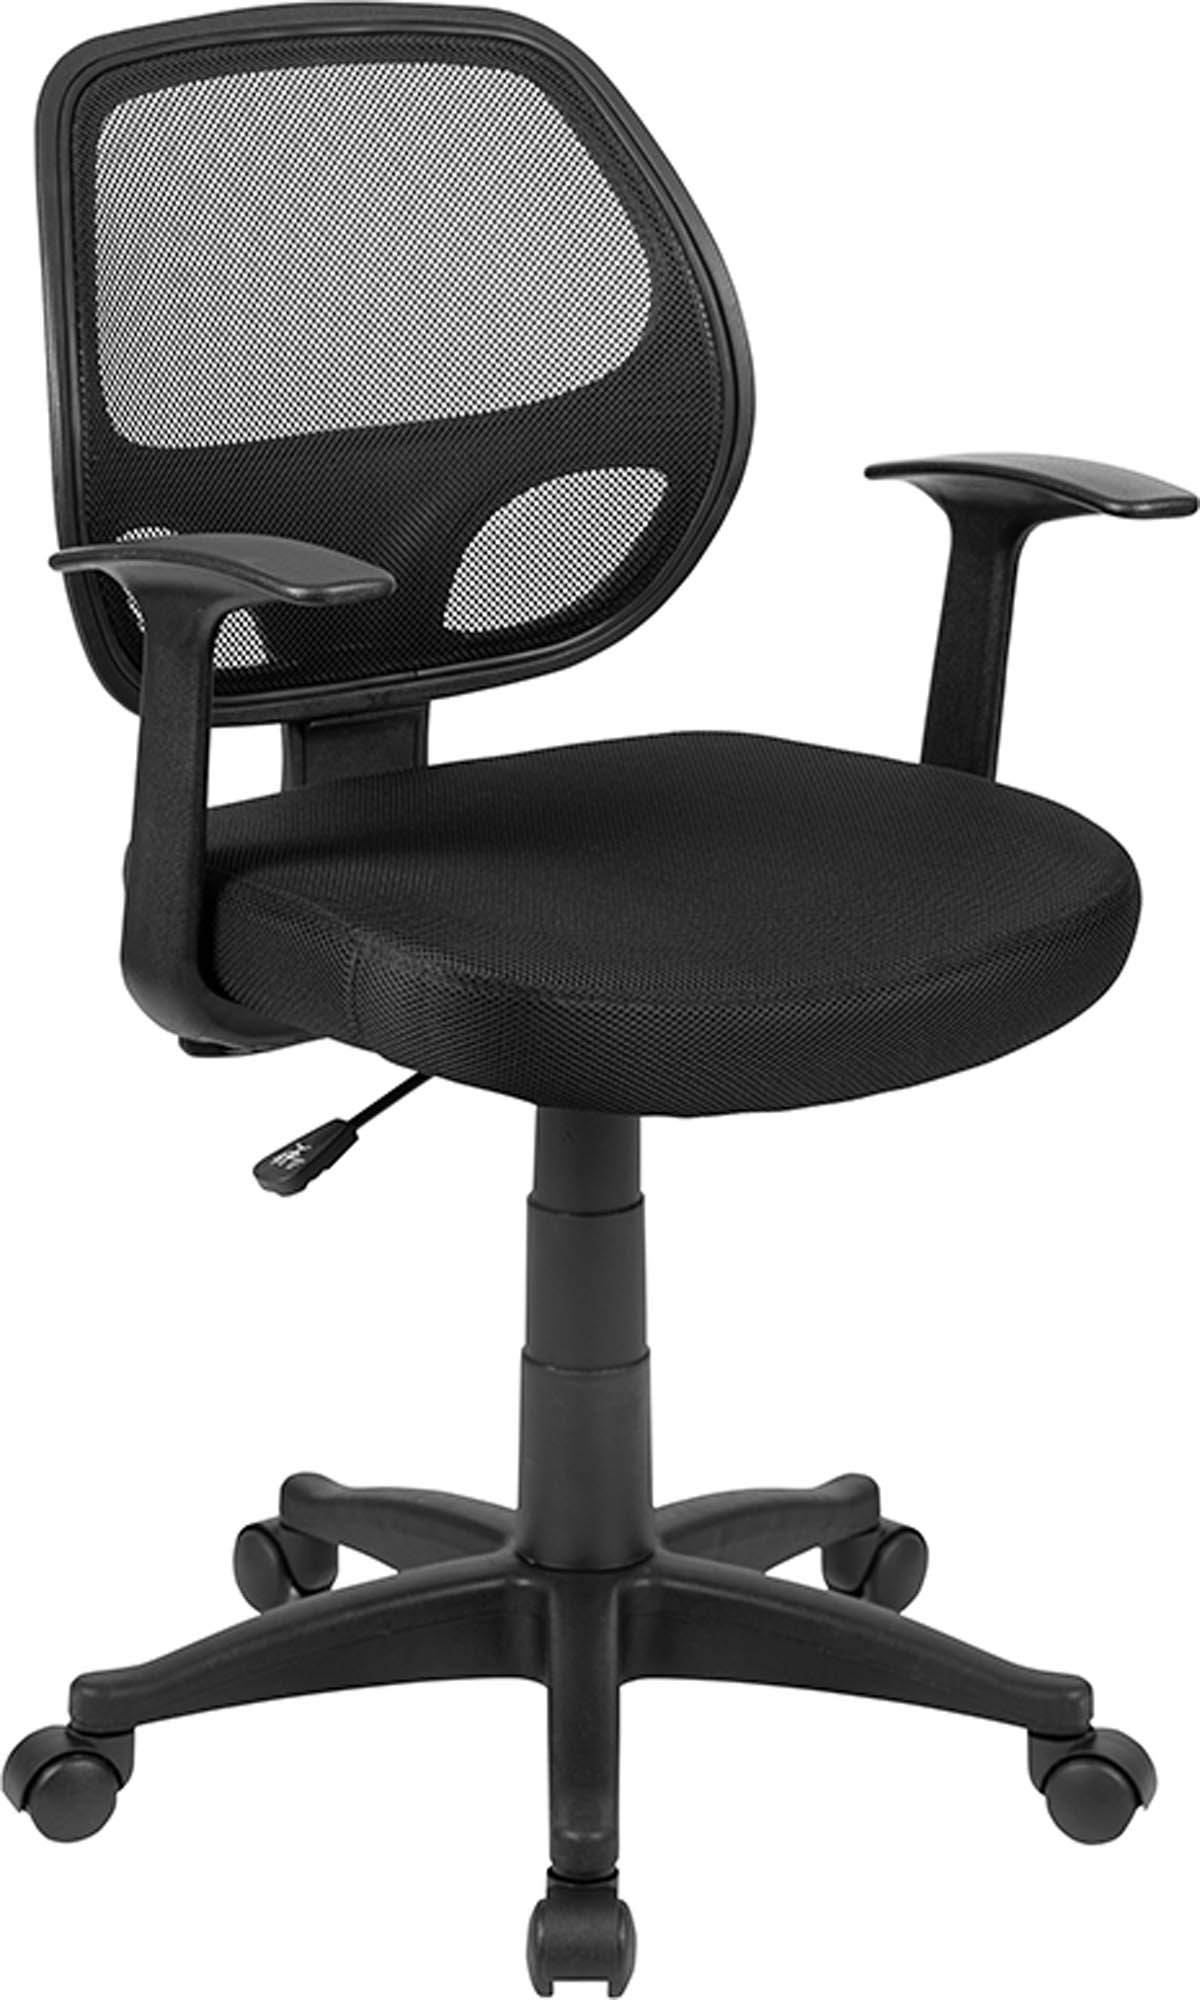 Offex Mid-Back Black Mesh Computer Chair